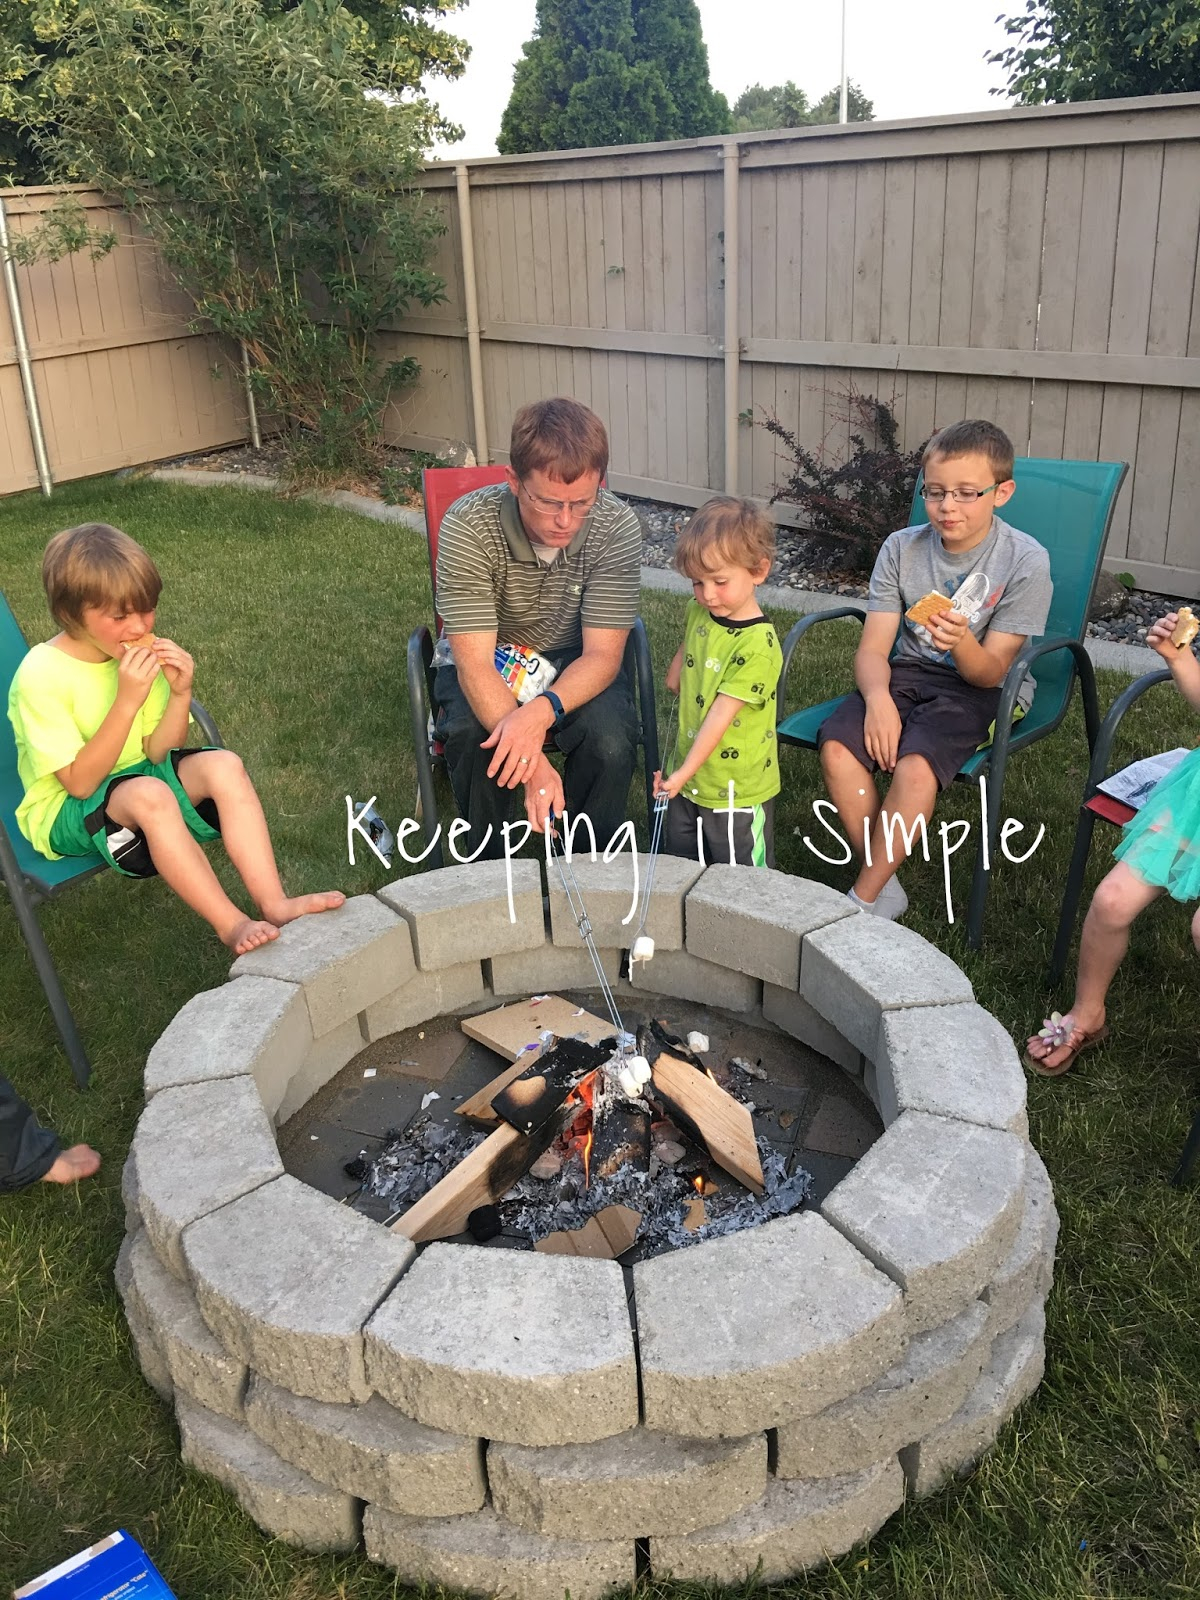 How To Build A Diy Fire Pit For Only 60 Keeping It Simple with 10 Clever Designs of How to Craft Diy Backyard Fire Pit Ideas